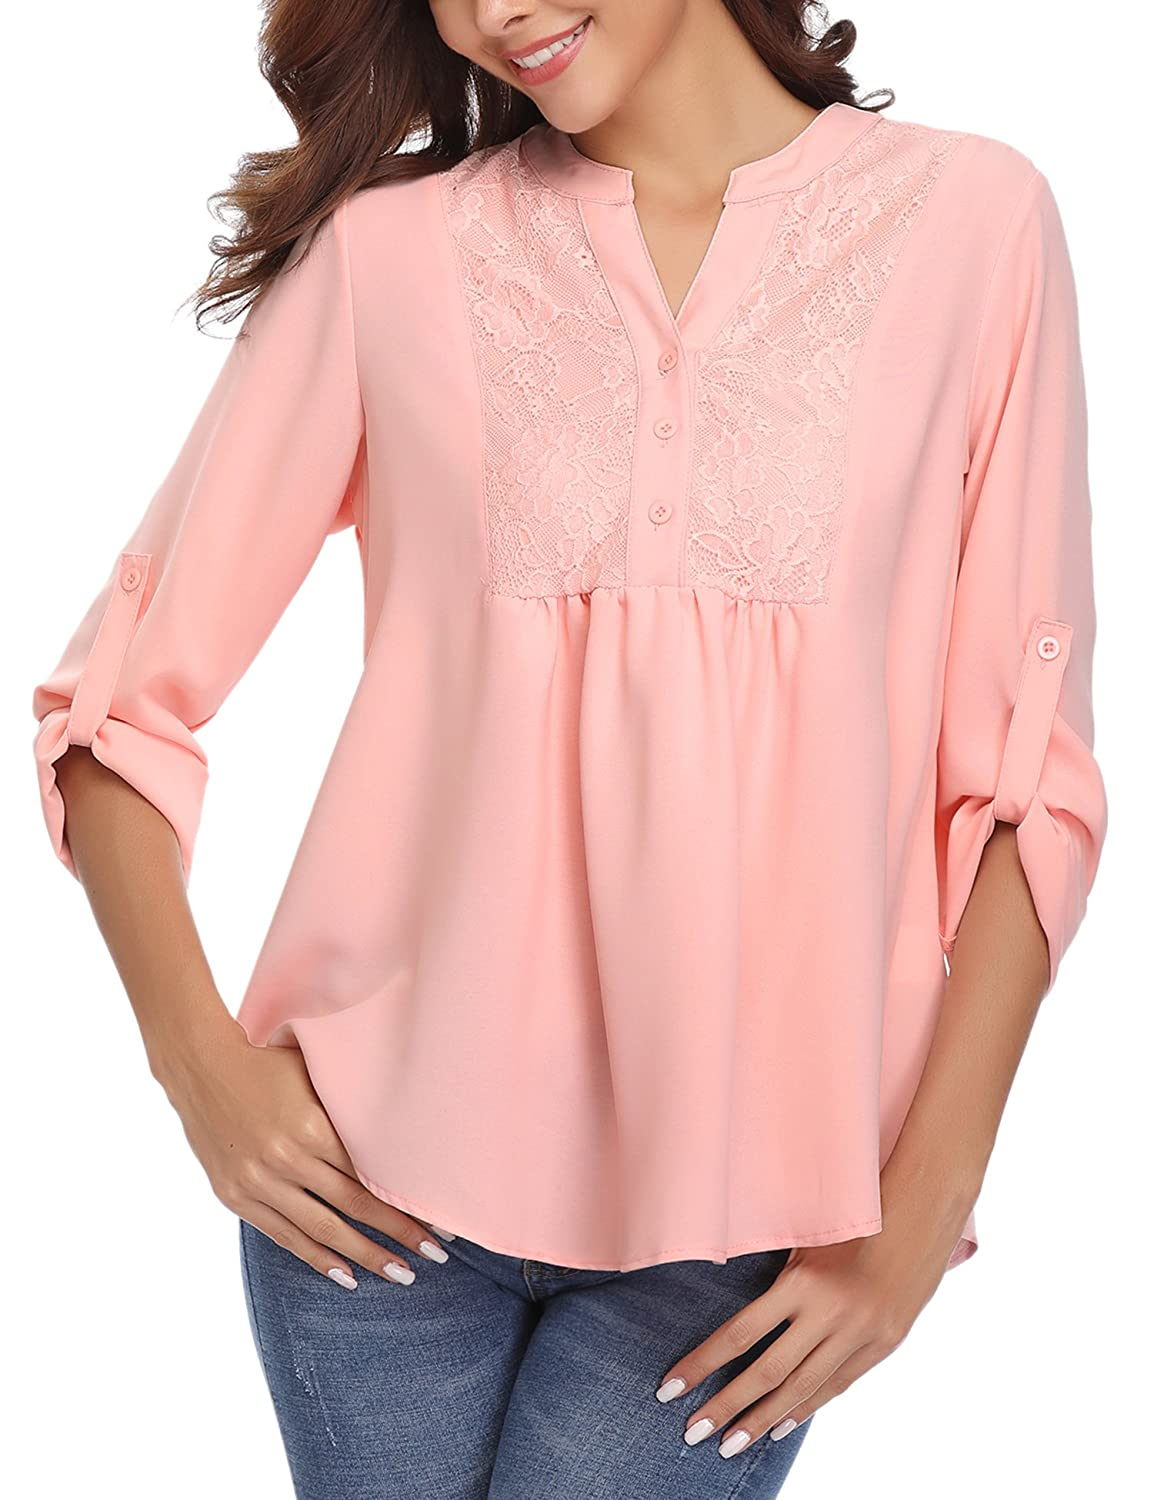 Abollria Womens Casual Chiffon V Neck Cold Shoulder Cuffed Long Sleeve Loose Shirt Blouse Tops